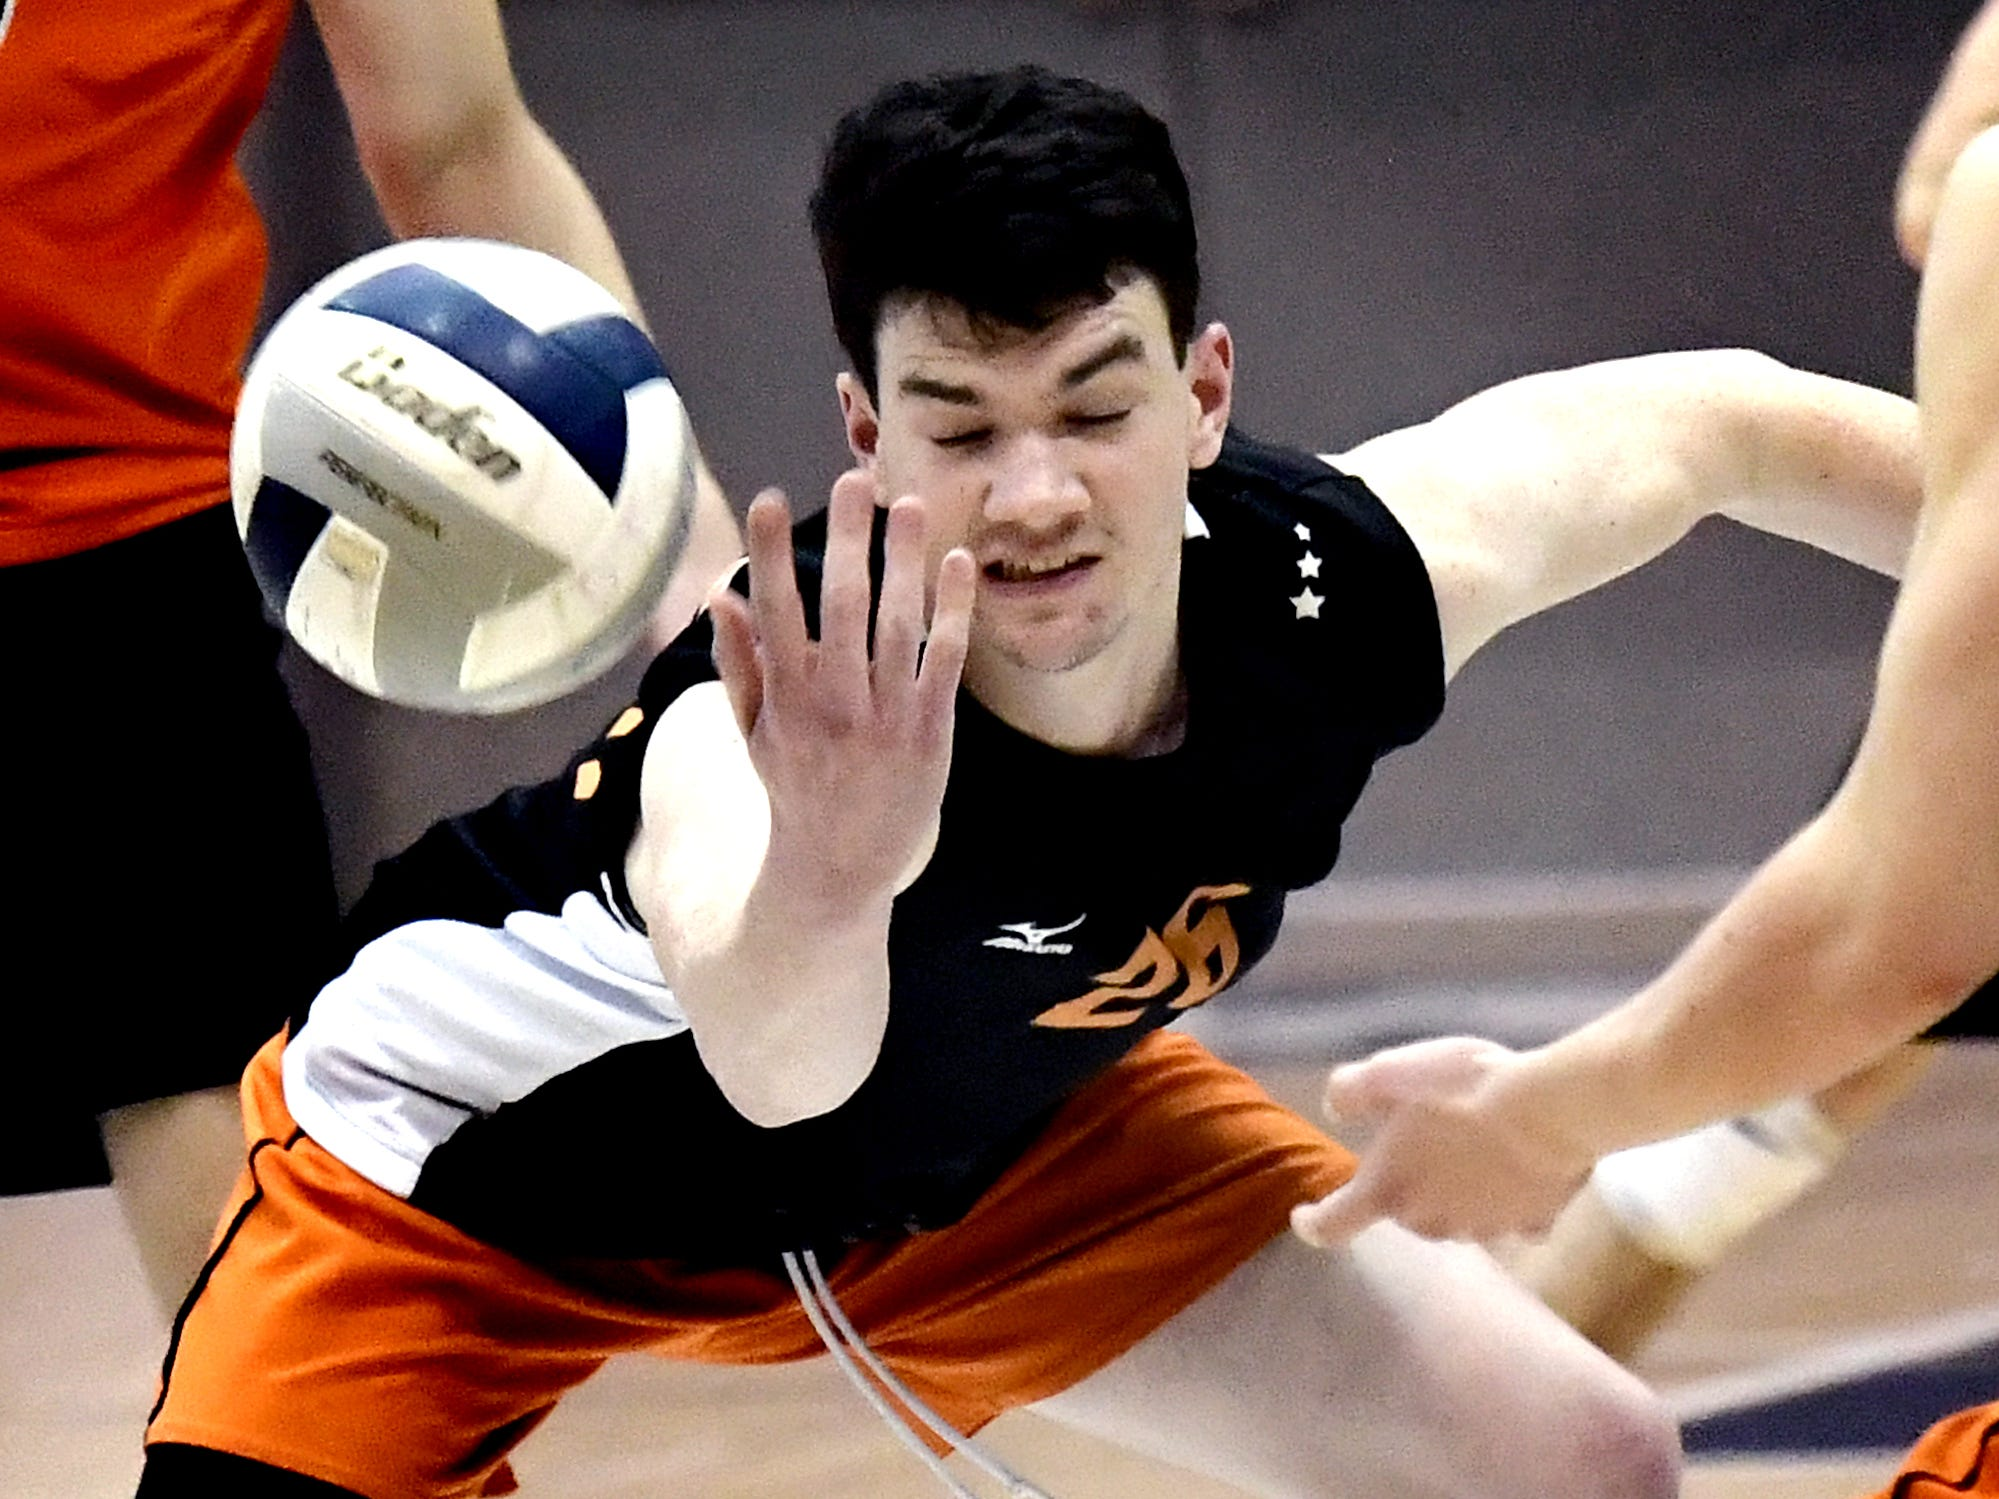 Central York's Eric Bowman saves against Northeastern in the York-Adams boys' volleyball championship match at Dallastown Tuesday, May 14, 2019. Bill Kalina photo